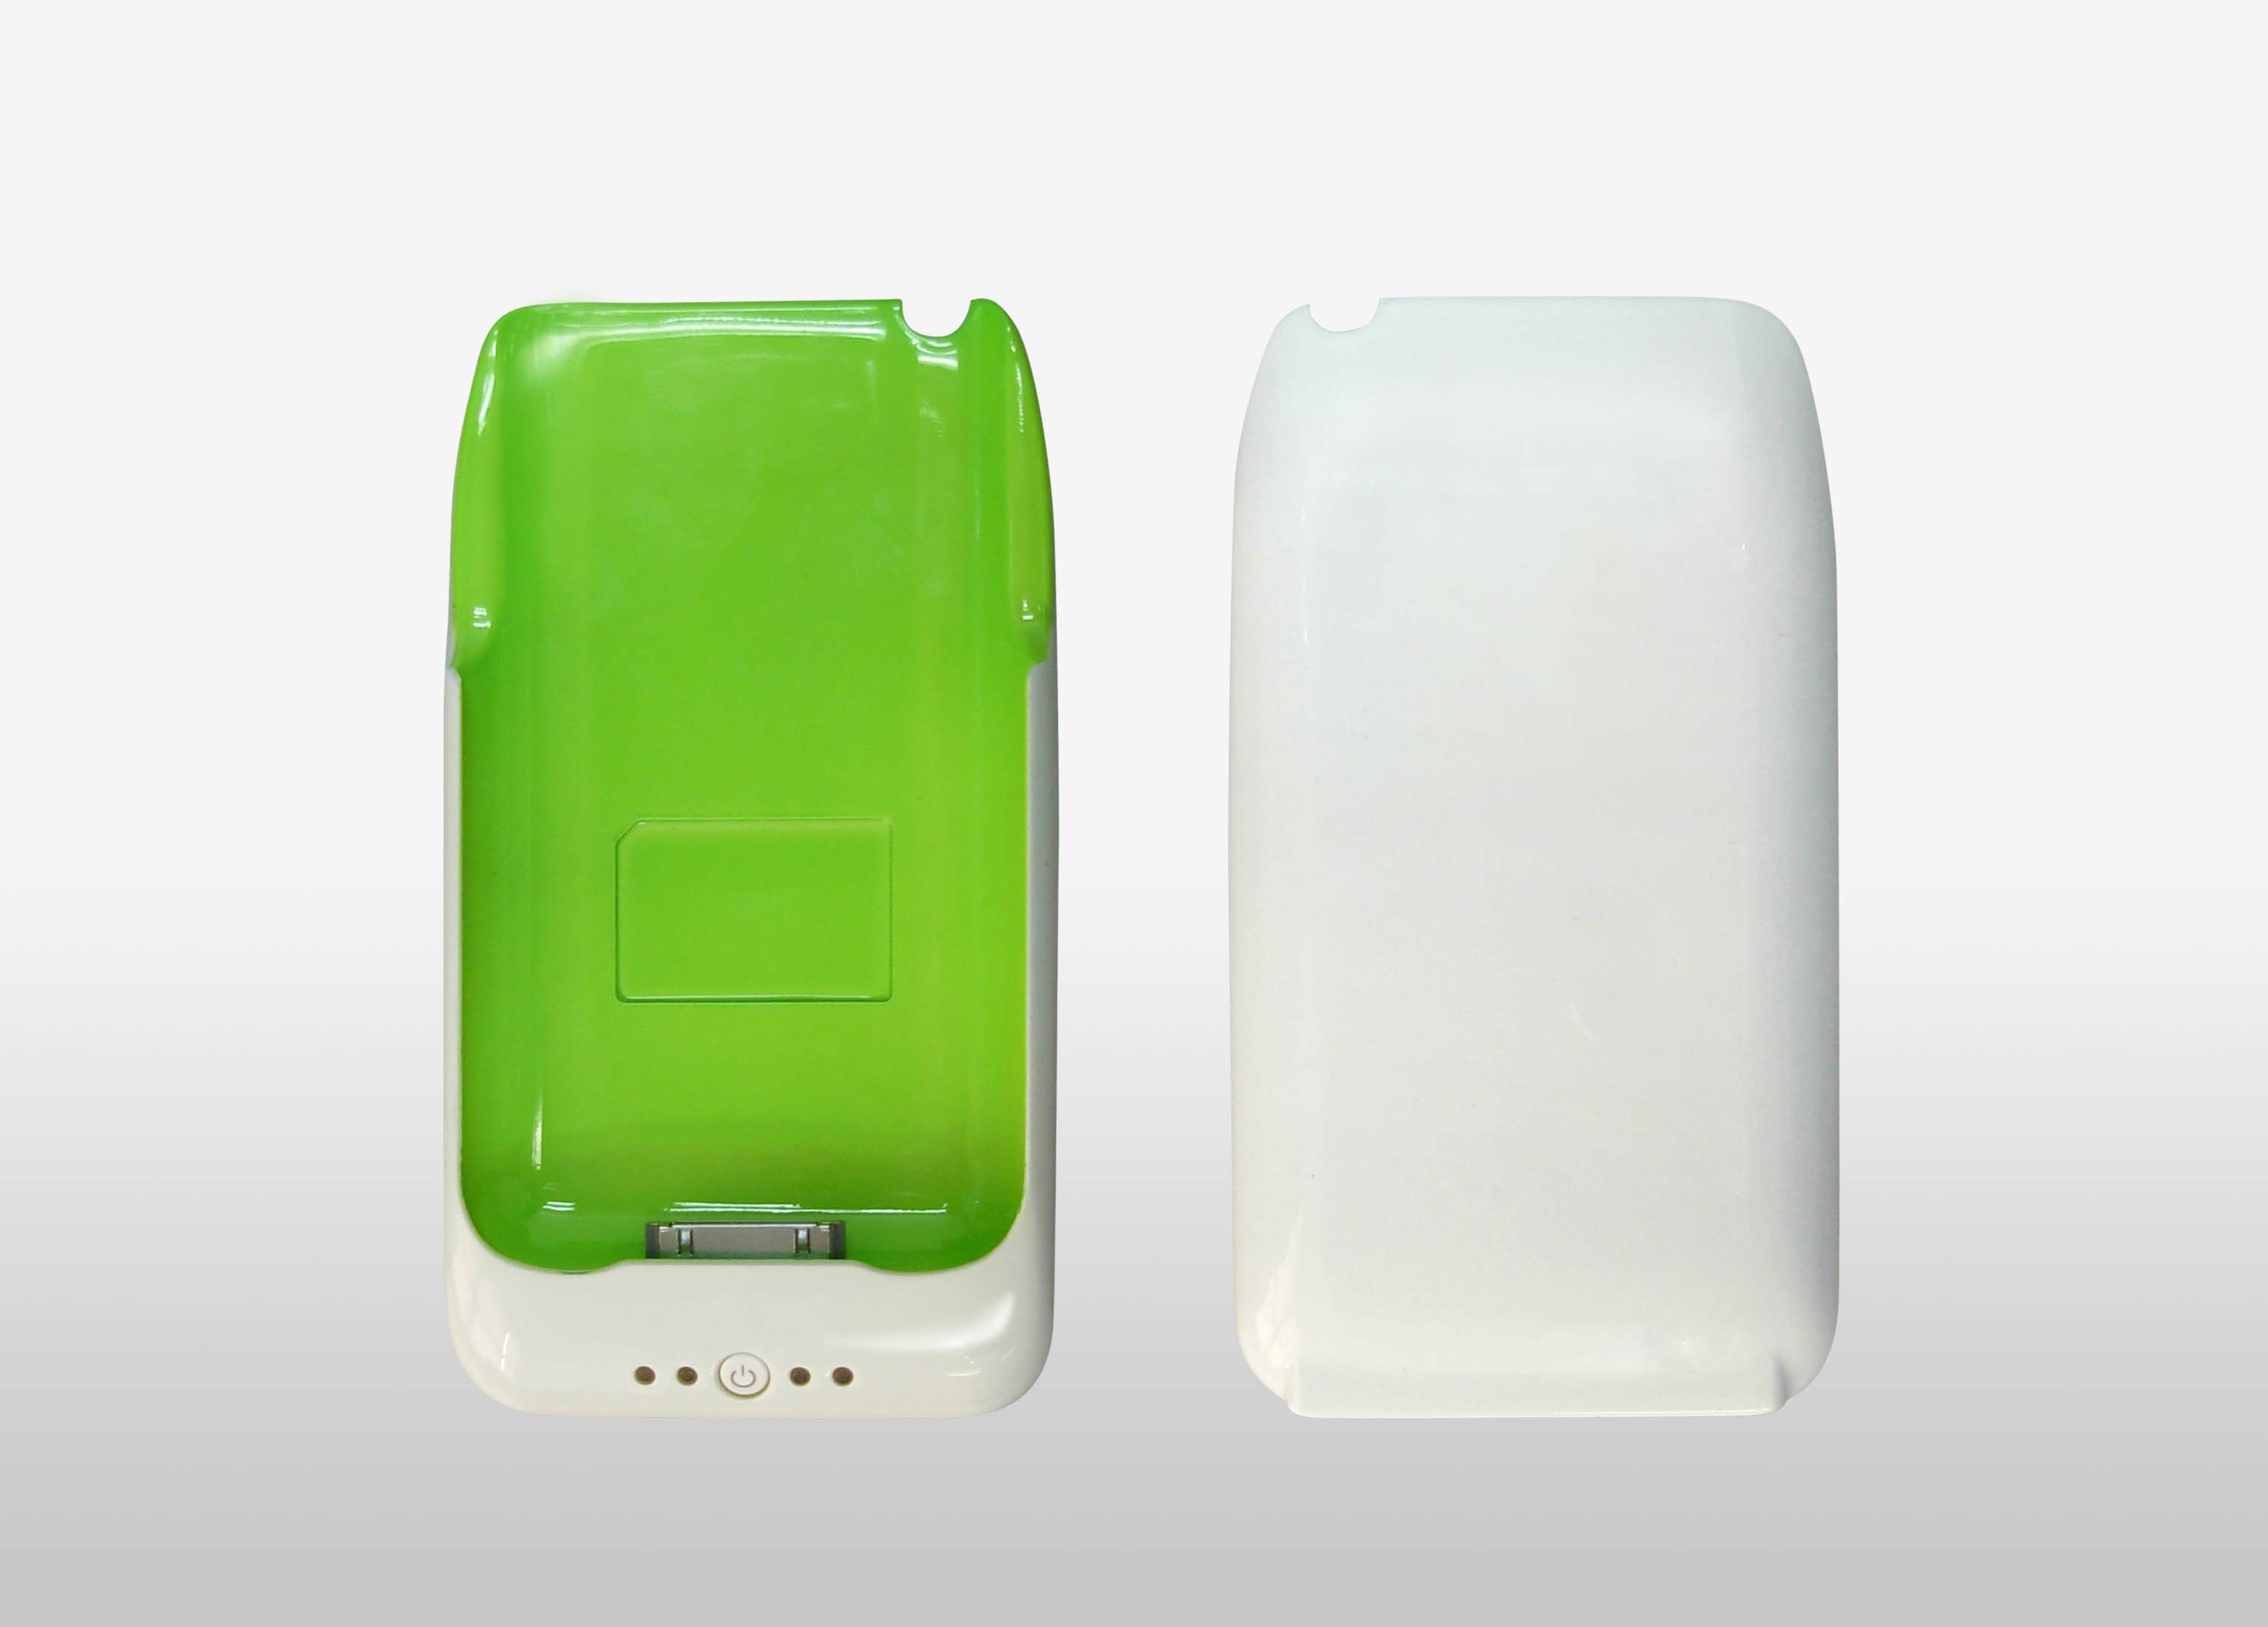 iPhone Power Pack Case+external battery for 3G 3GS, White Green